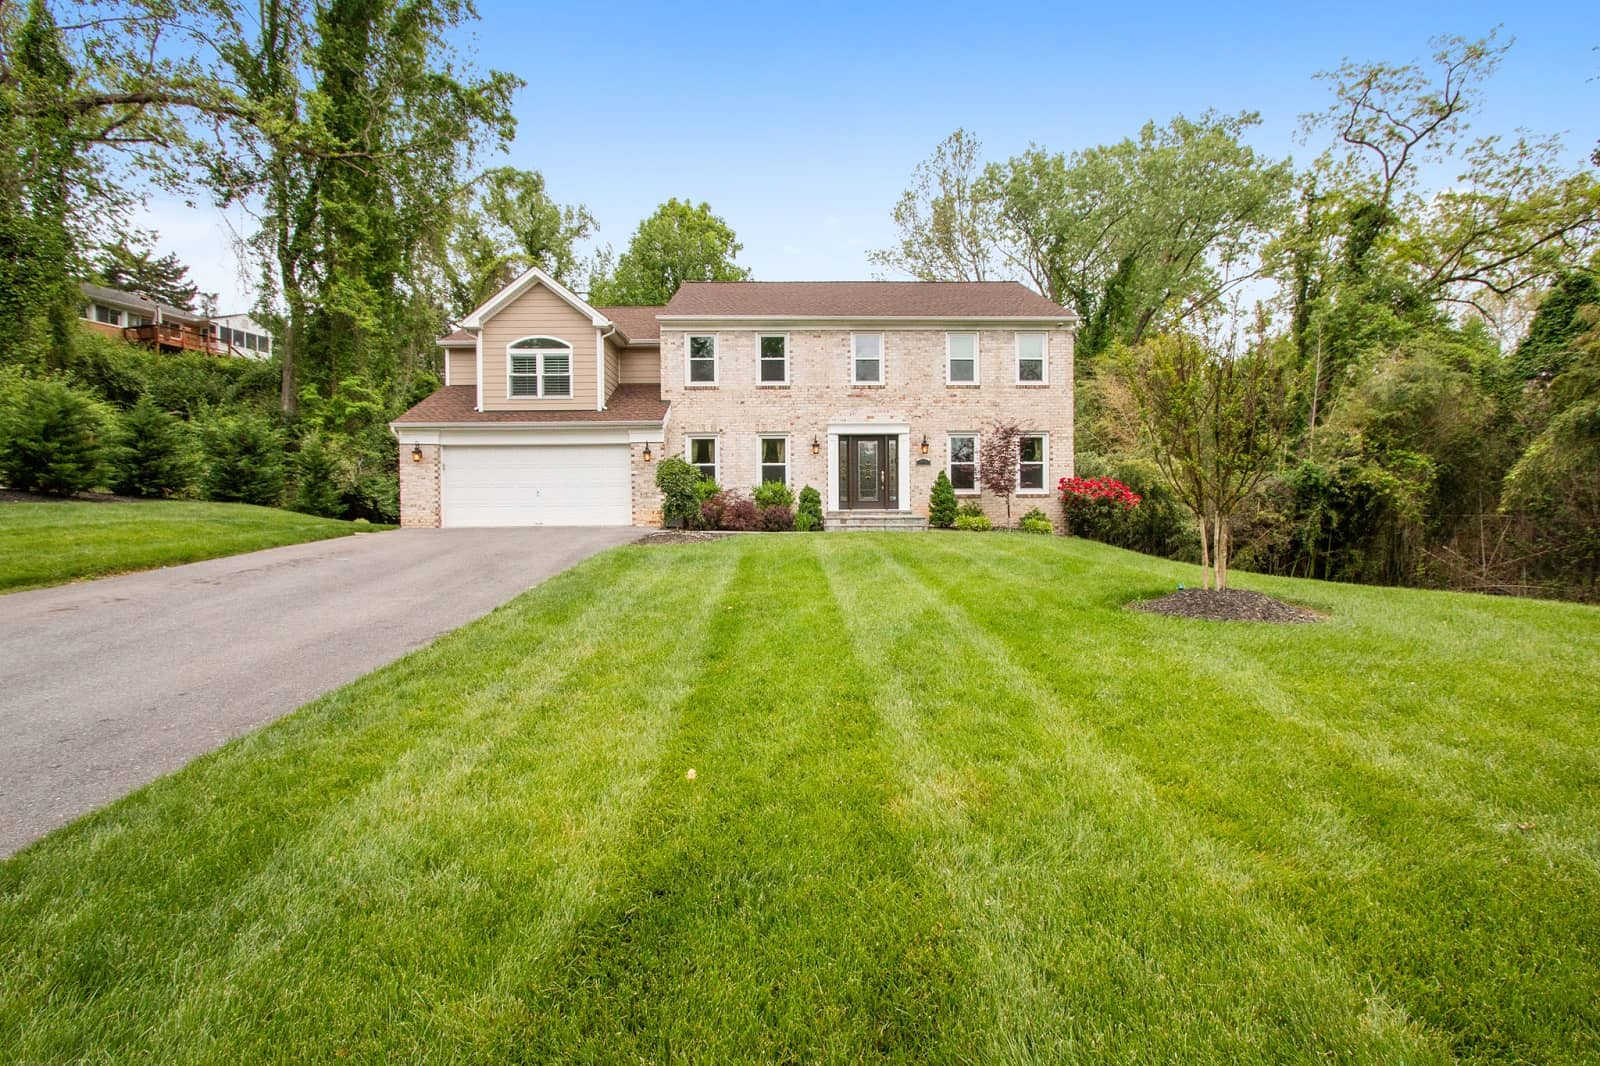 Real Estate Photography in Bethesda - Front View